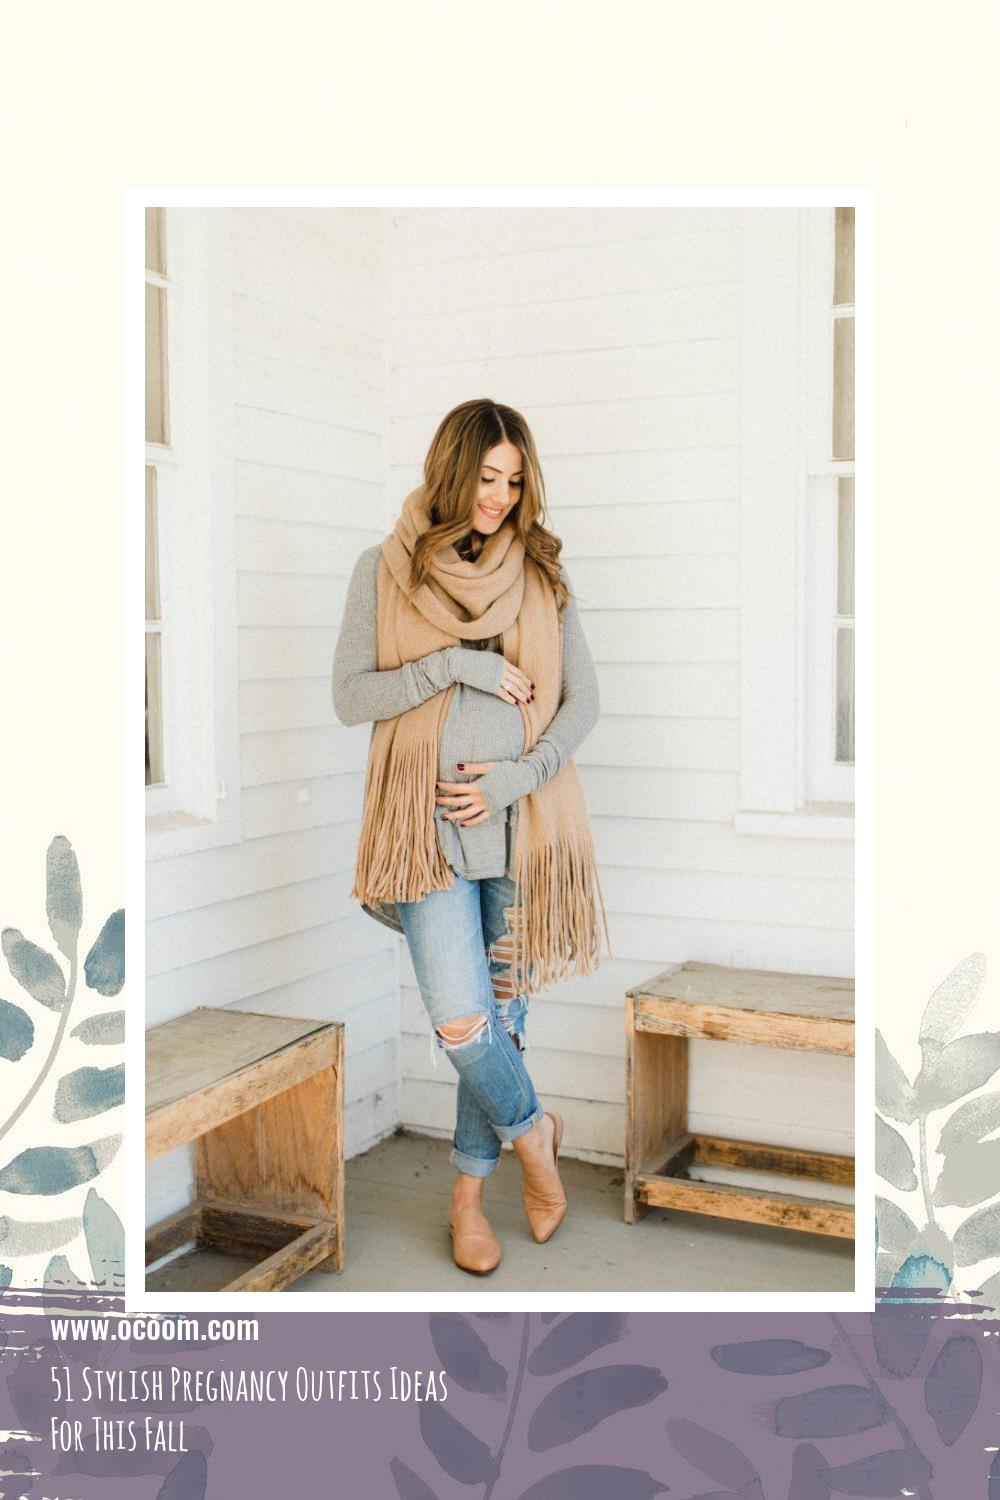 51 Stylish Pregnancy Outfits Ideas For This Fall 3